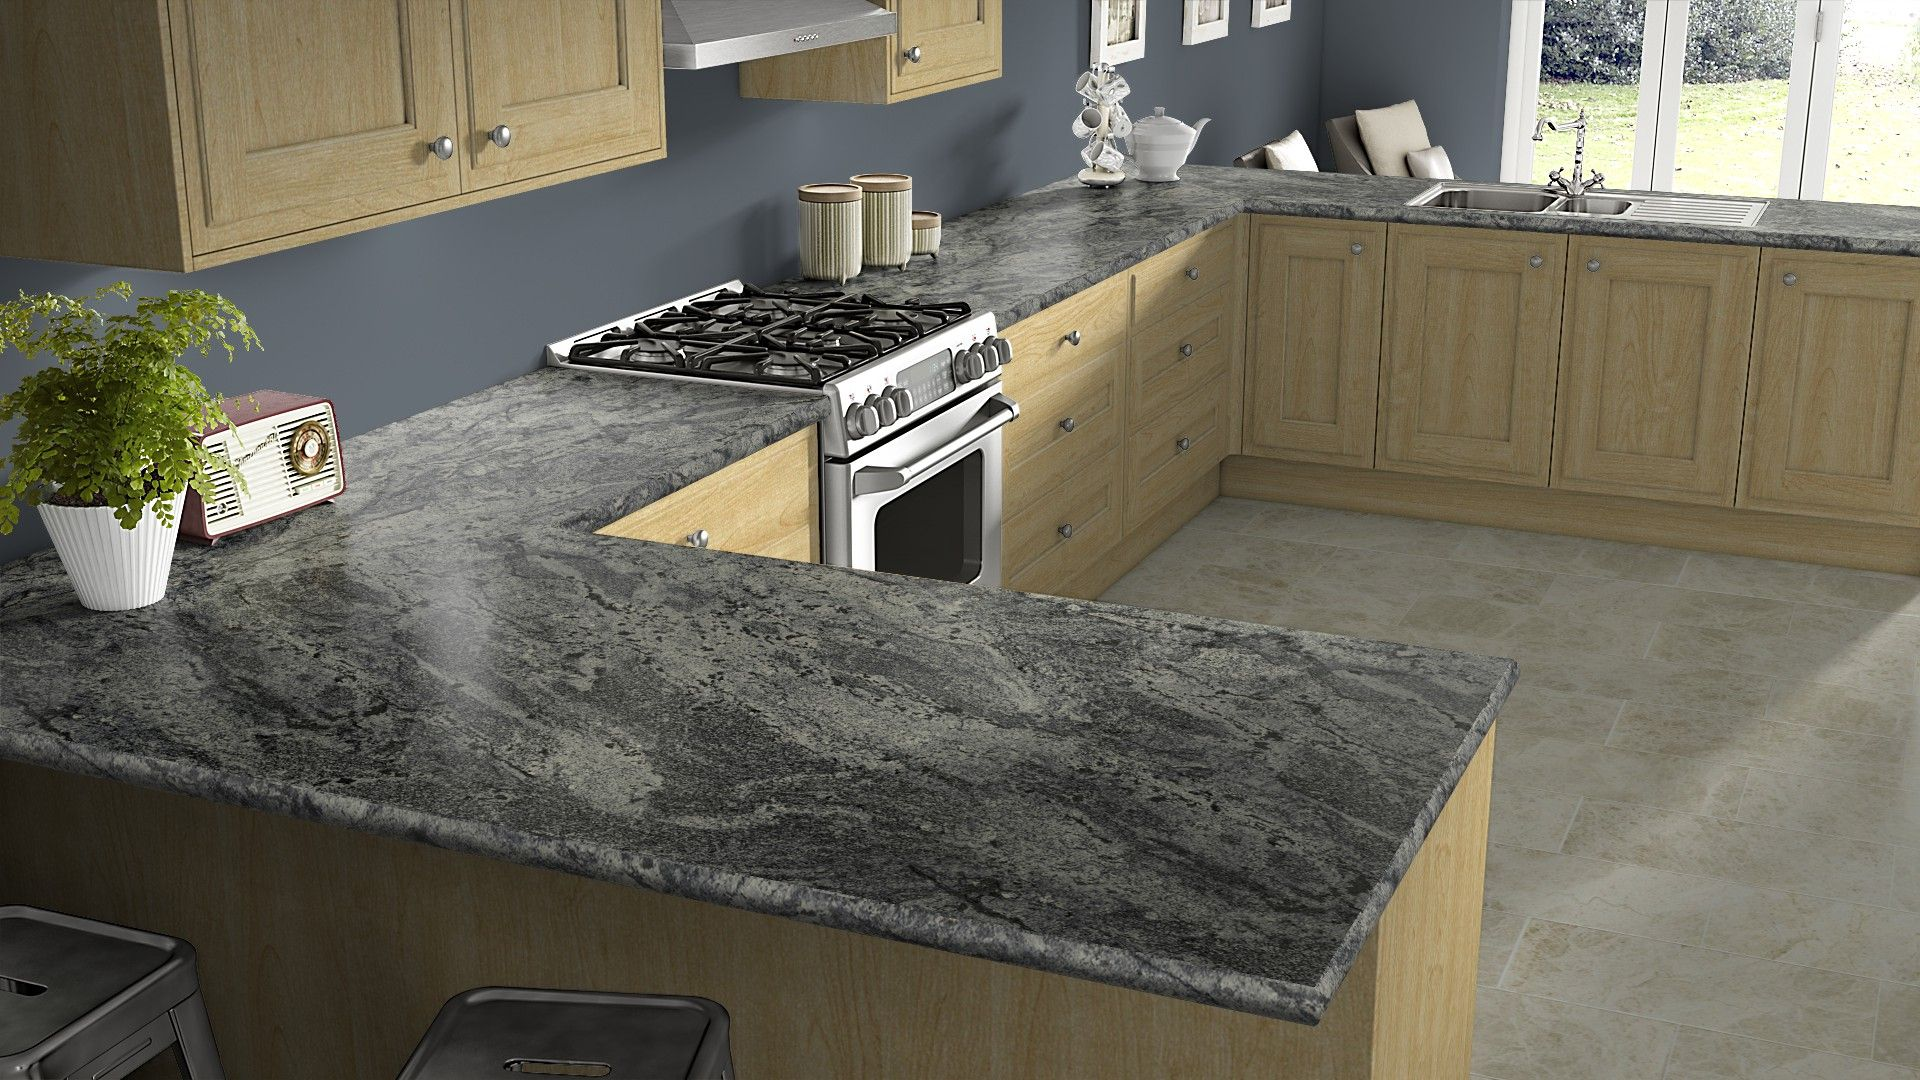 A Great Tool Get Inspired For Your Kitchen Renovation With Brilliant Kitchen Countertop Design Tool Design Inspiration